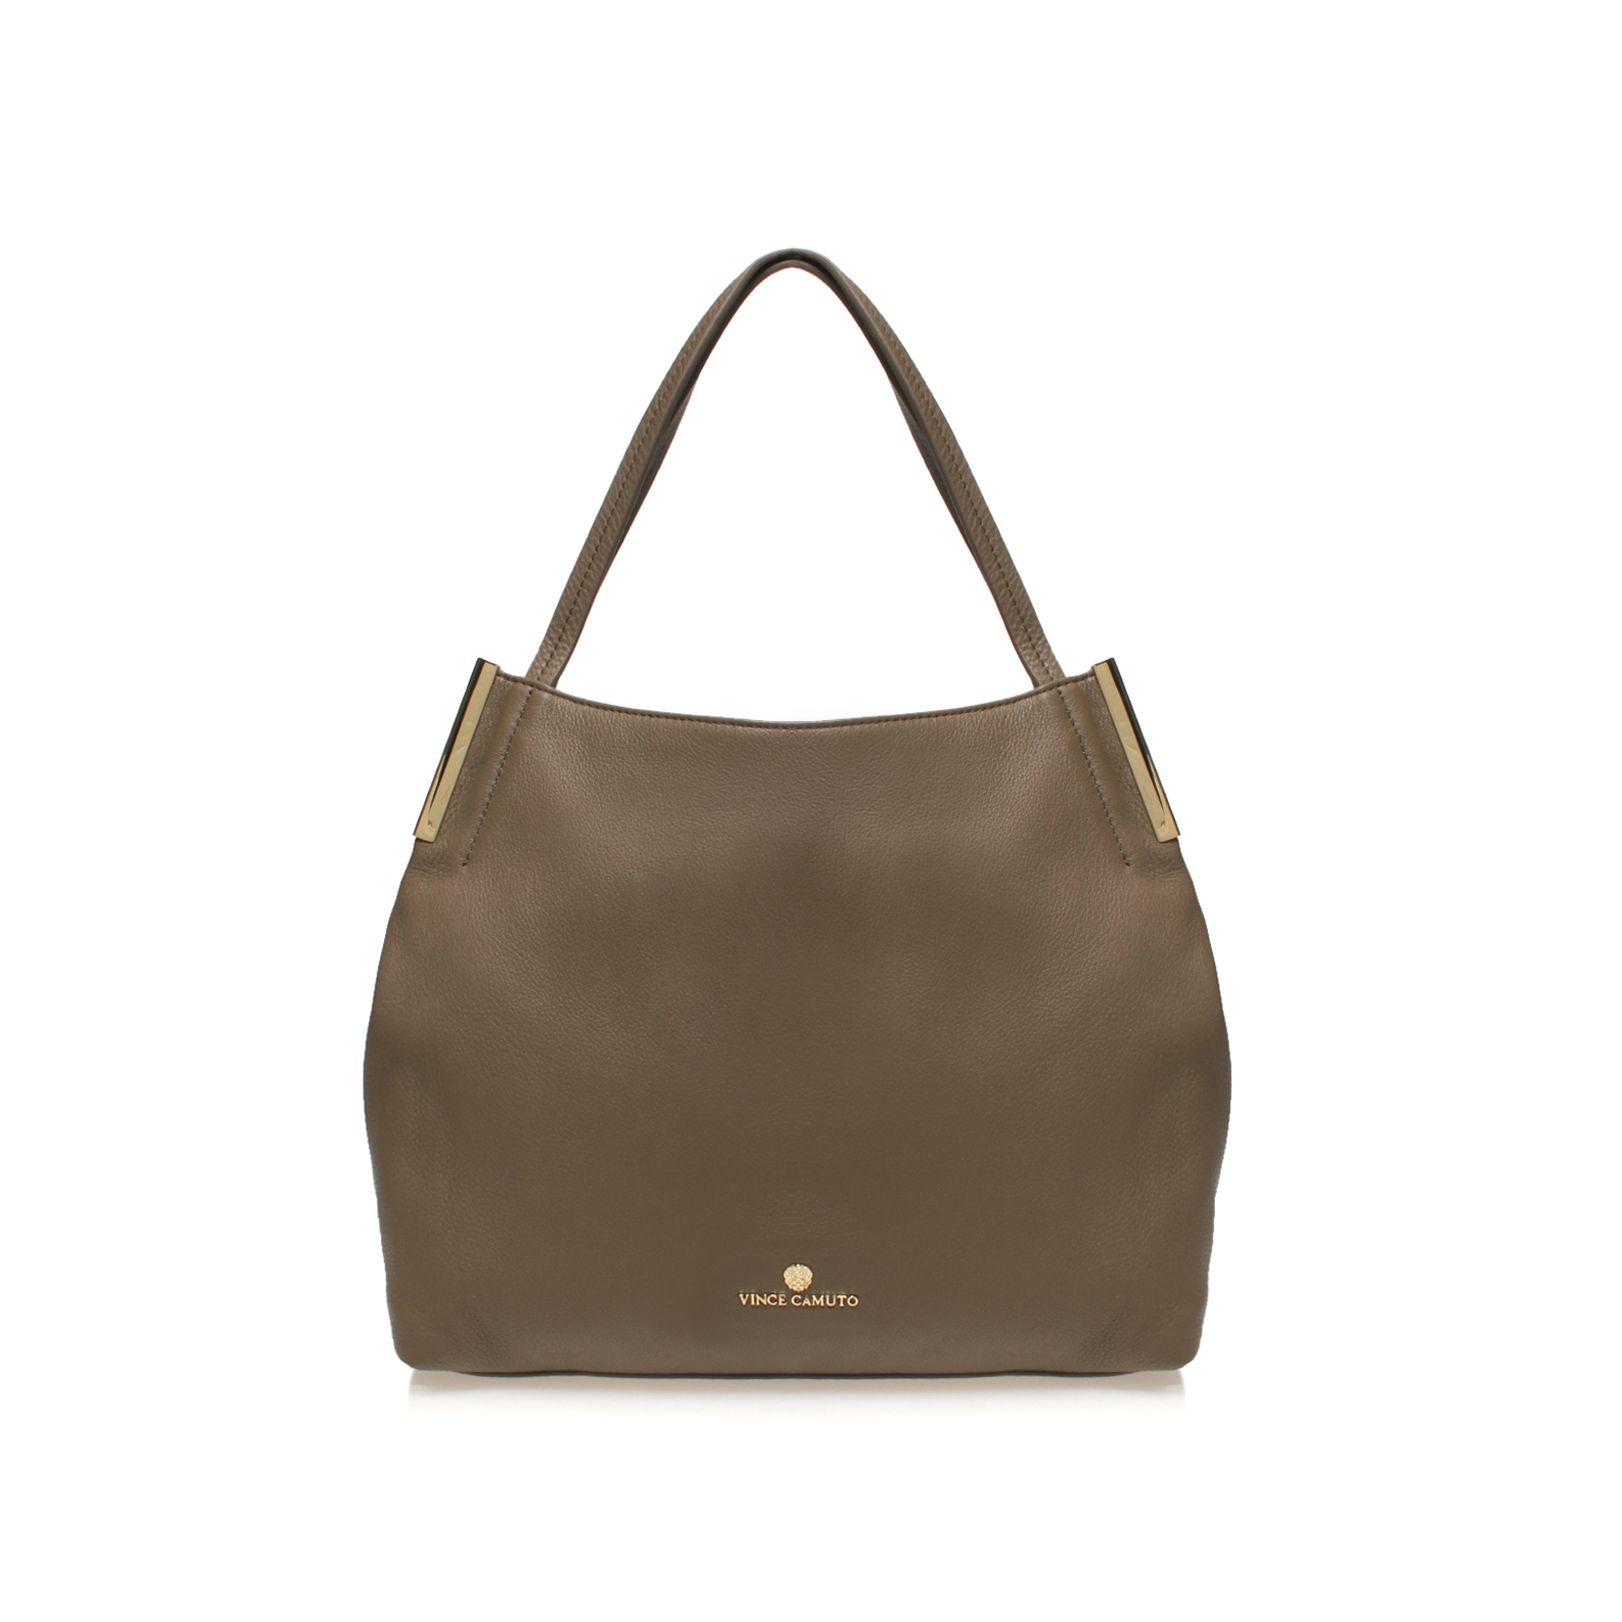 Vince Camuto Tina Tote Bag In Brown Taupe Lyst